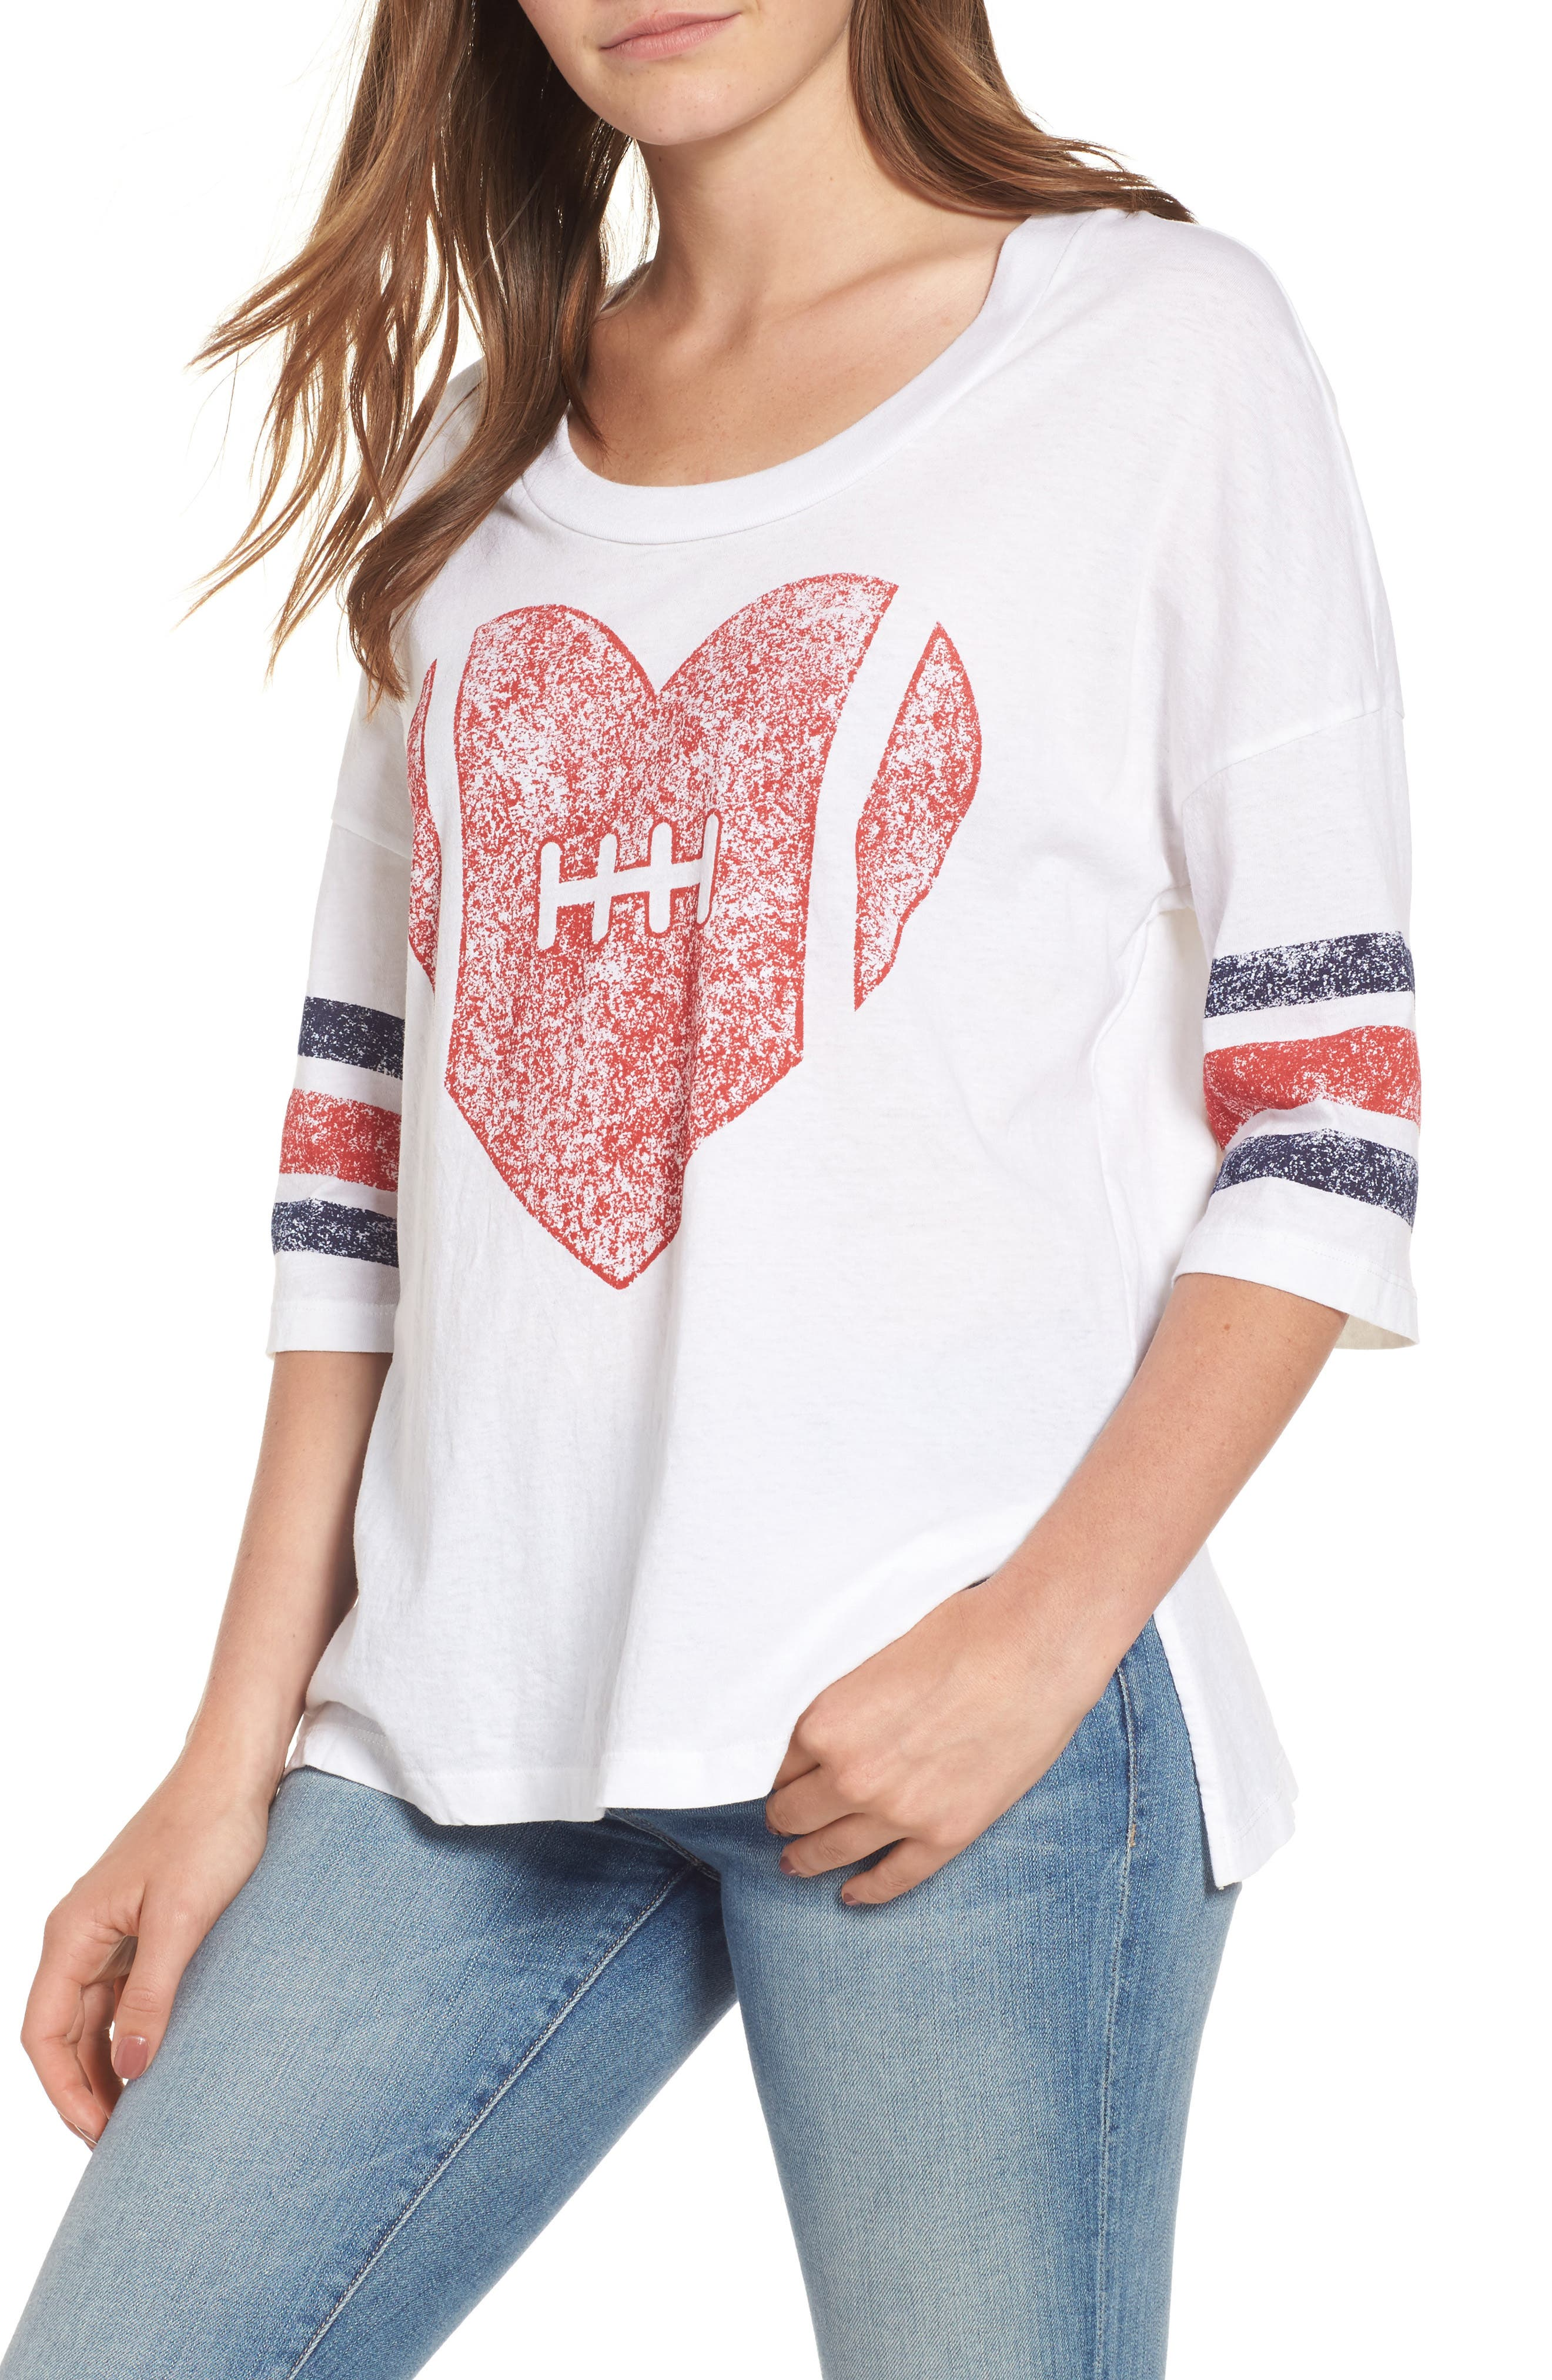 Alternate Image 1 Selected - Sundry Football Heart Tee (Nordstrom Exclusive)